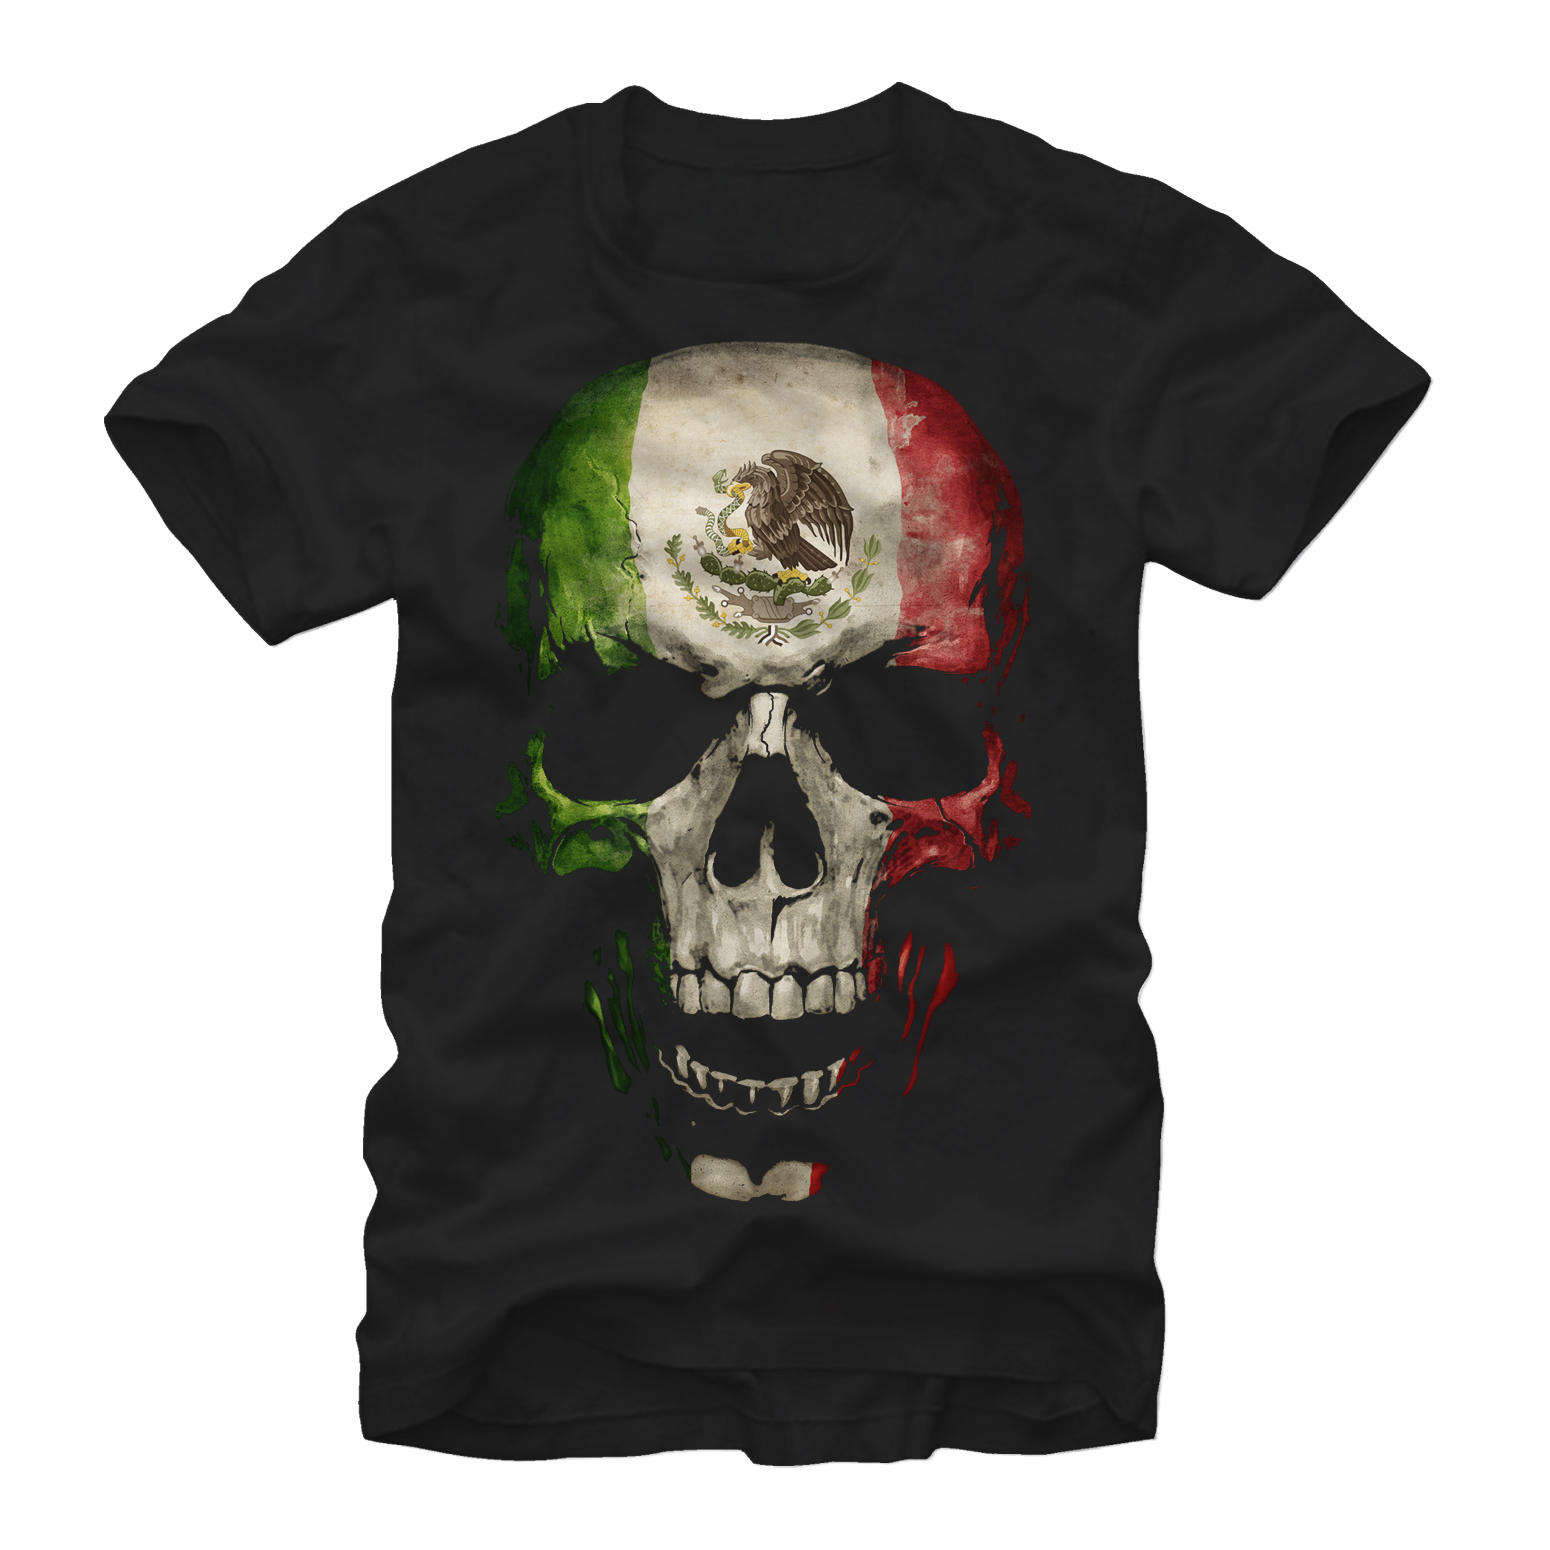 Aztlan Mexican Flag Skull Mens Graphic T Shirt by Fifth Sun